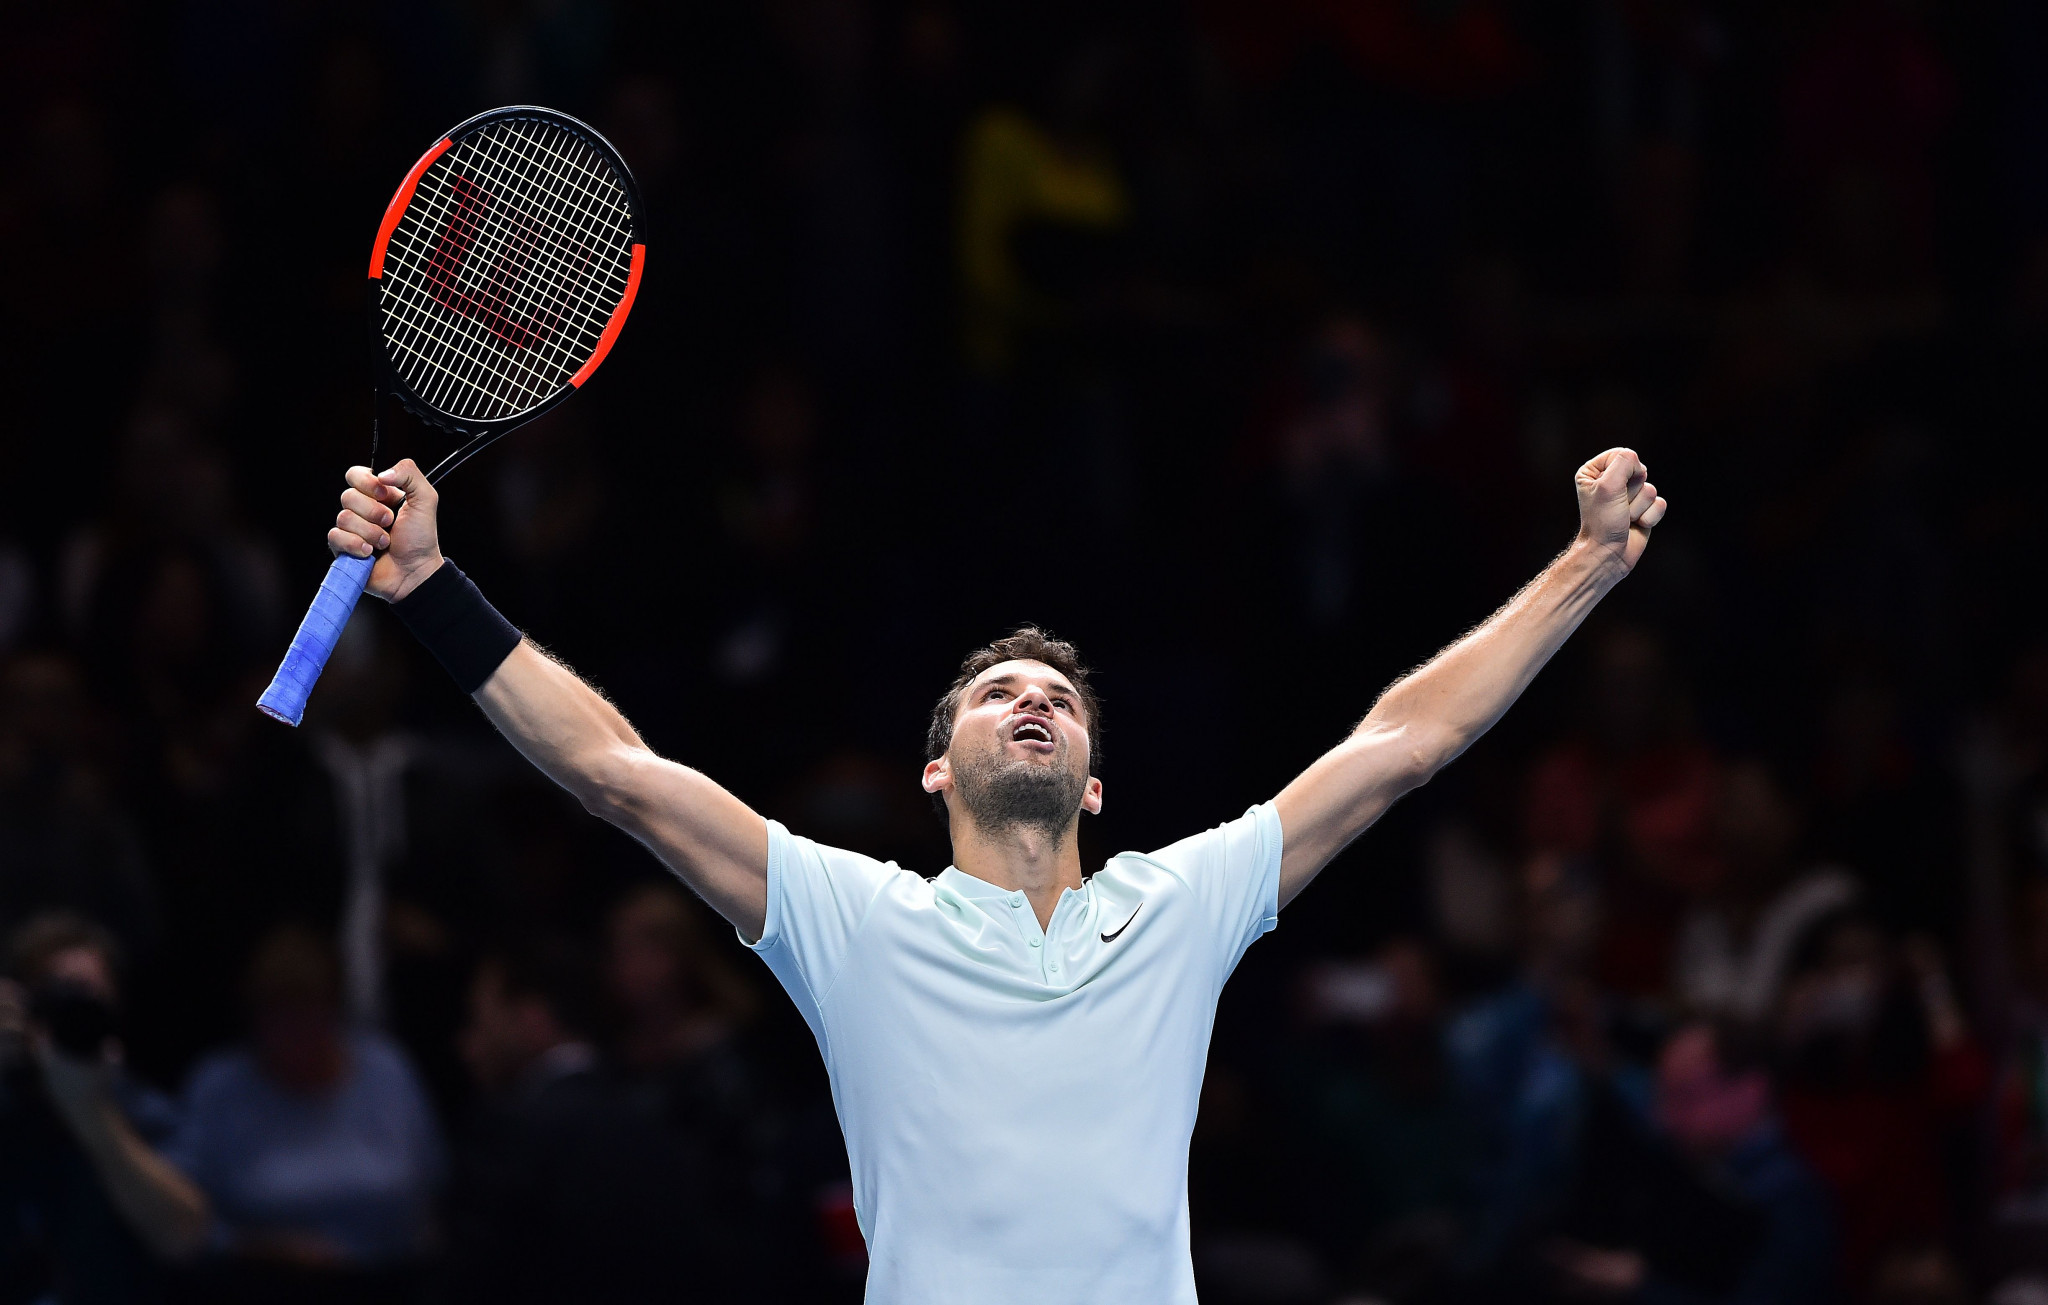 Dimitrov storms into ATP World Tour Finals last four after thrashing Goffin